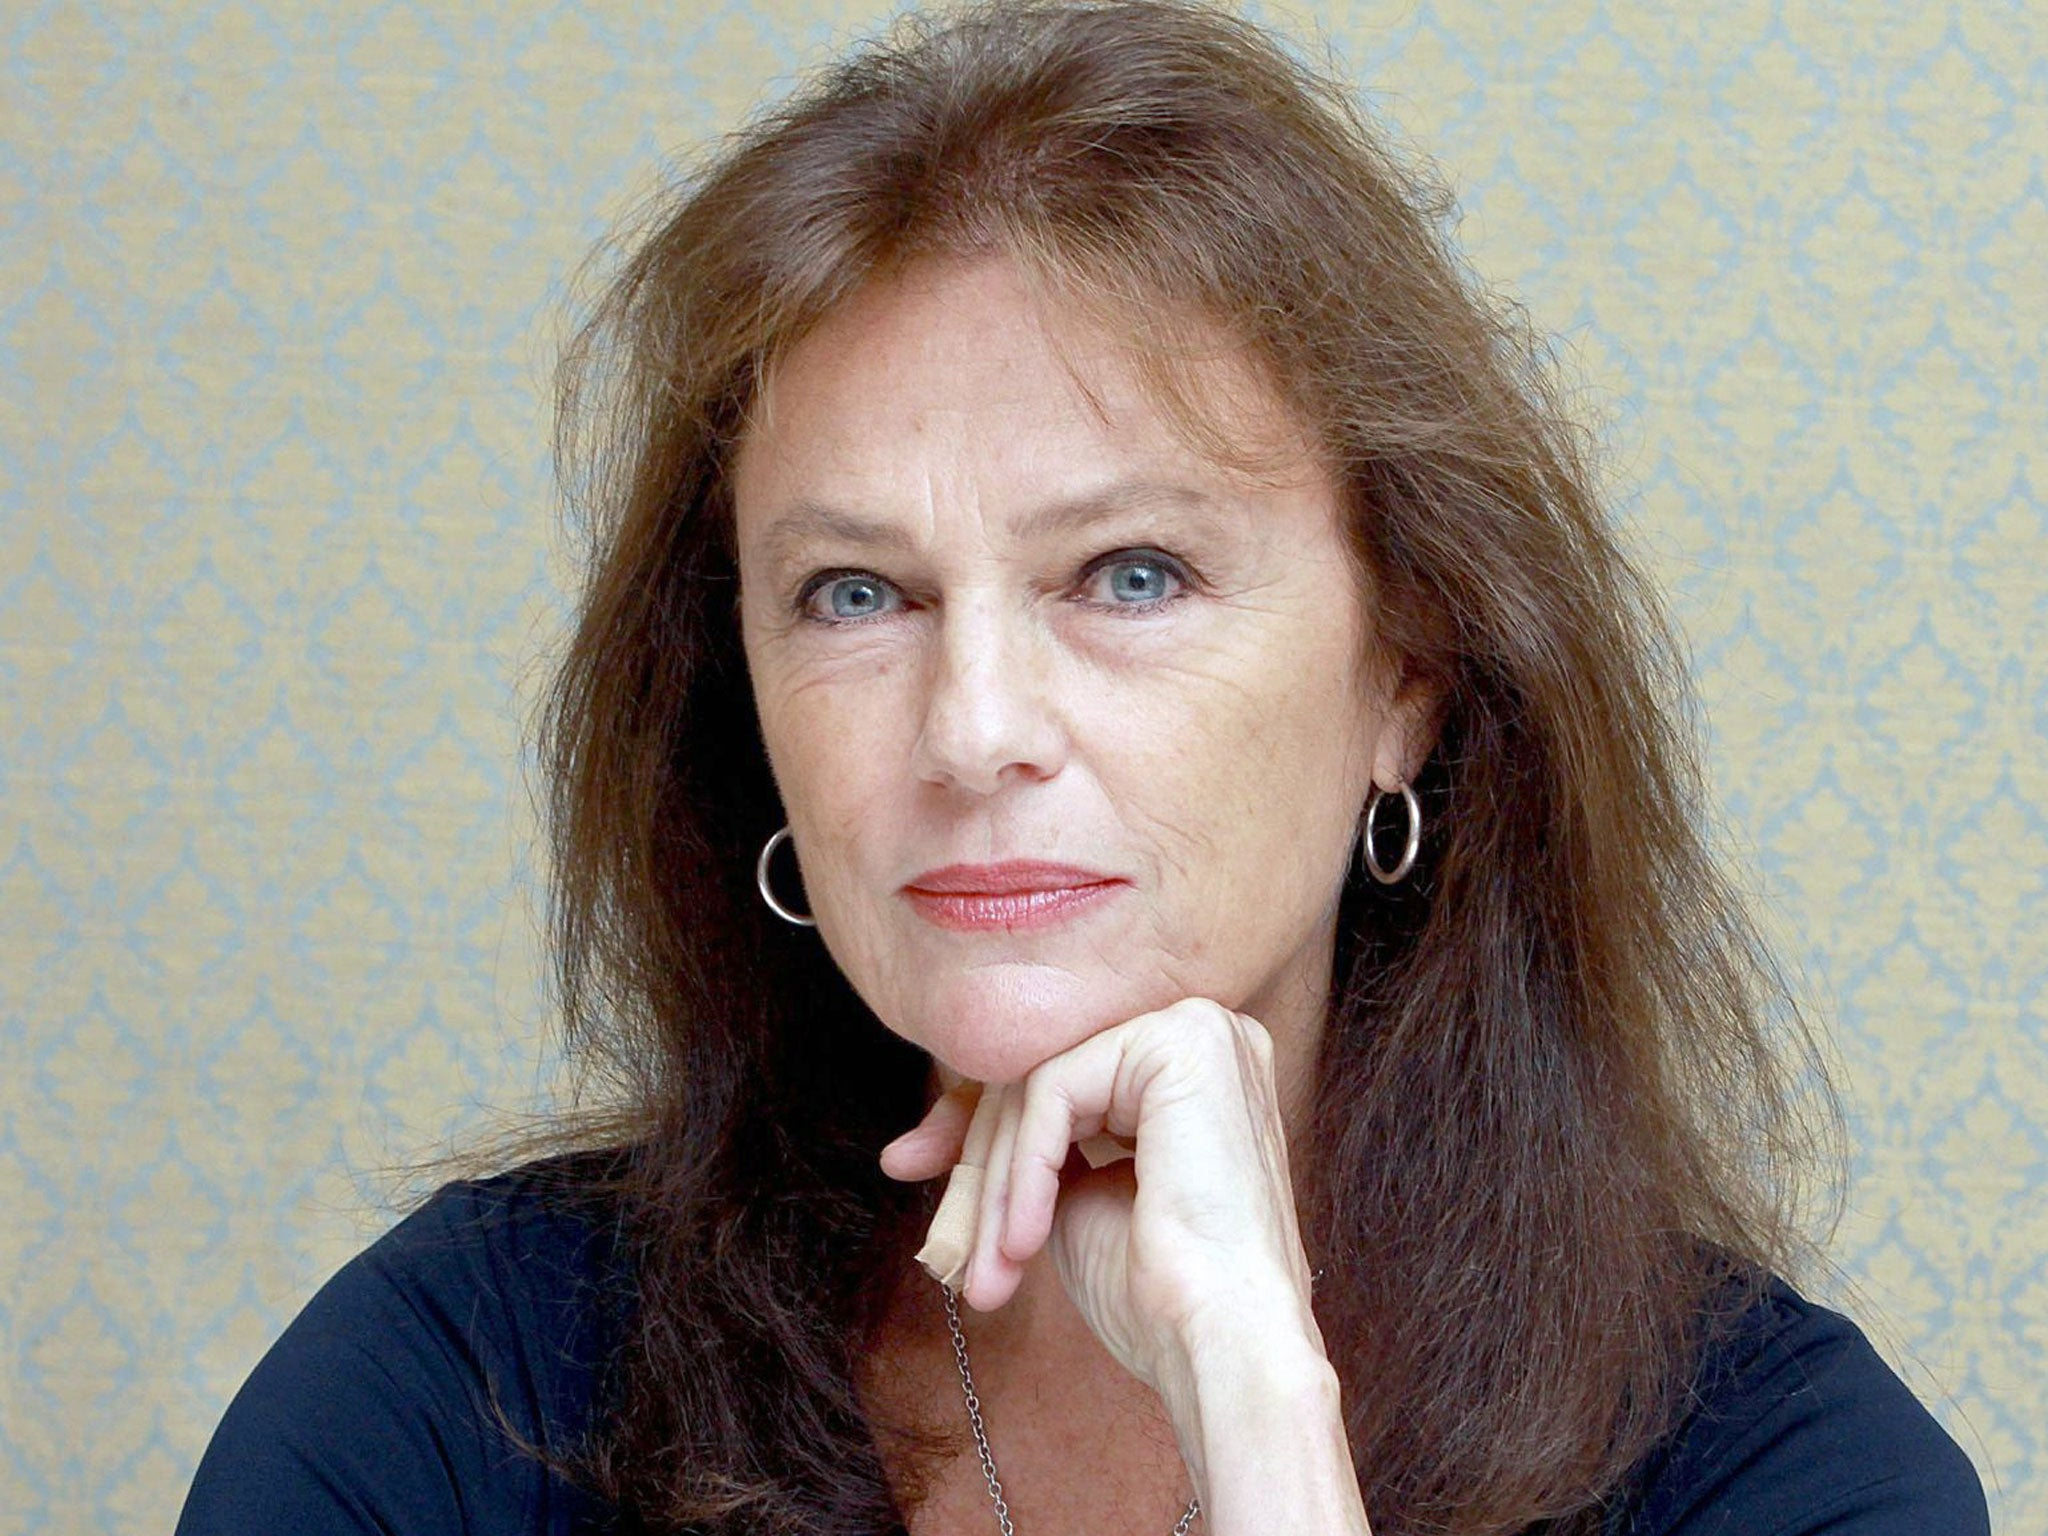 Jacqueline Bisset Naked Pretty jacqueline bisset: in the prime of life | the independent